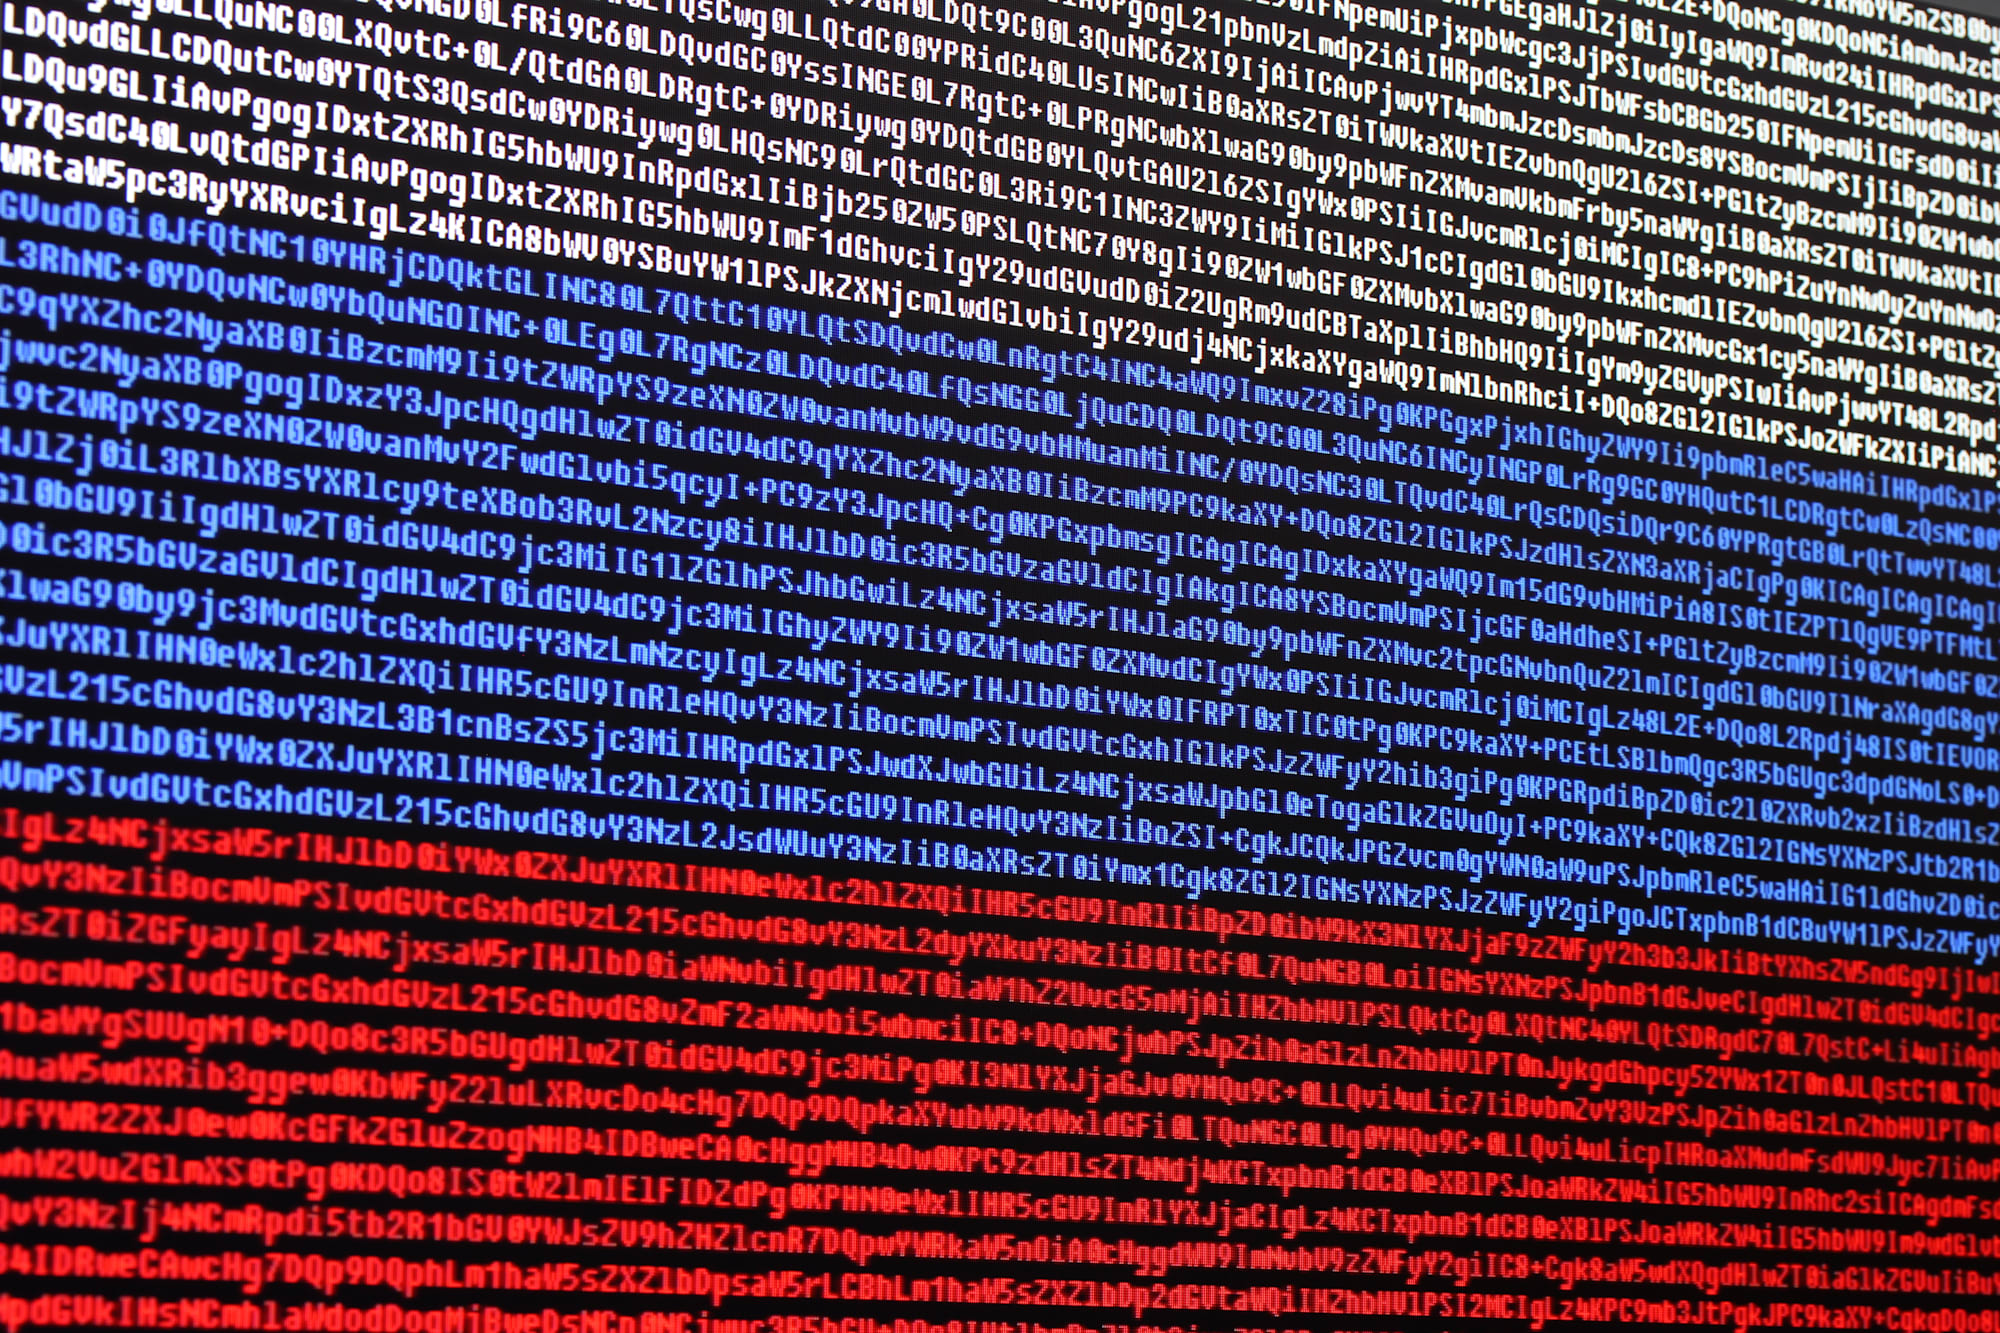 Russian hackers have been targeting journalists since 2014 - CTech